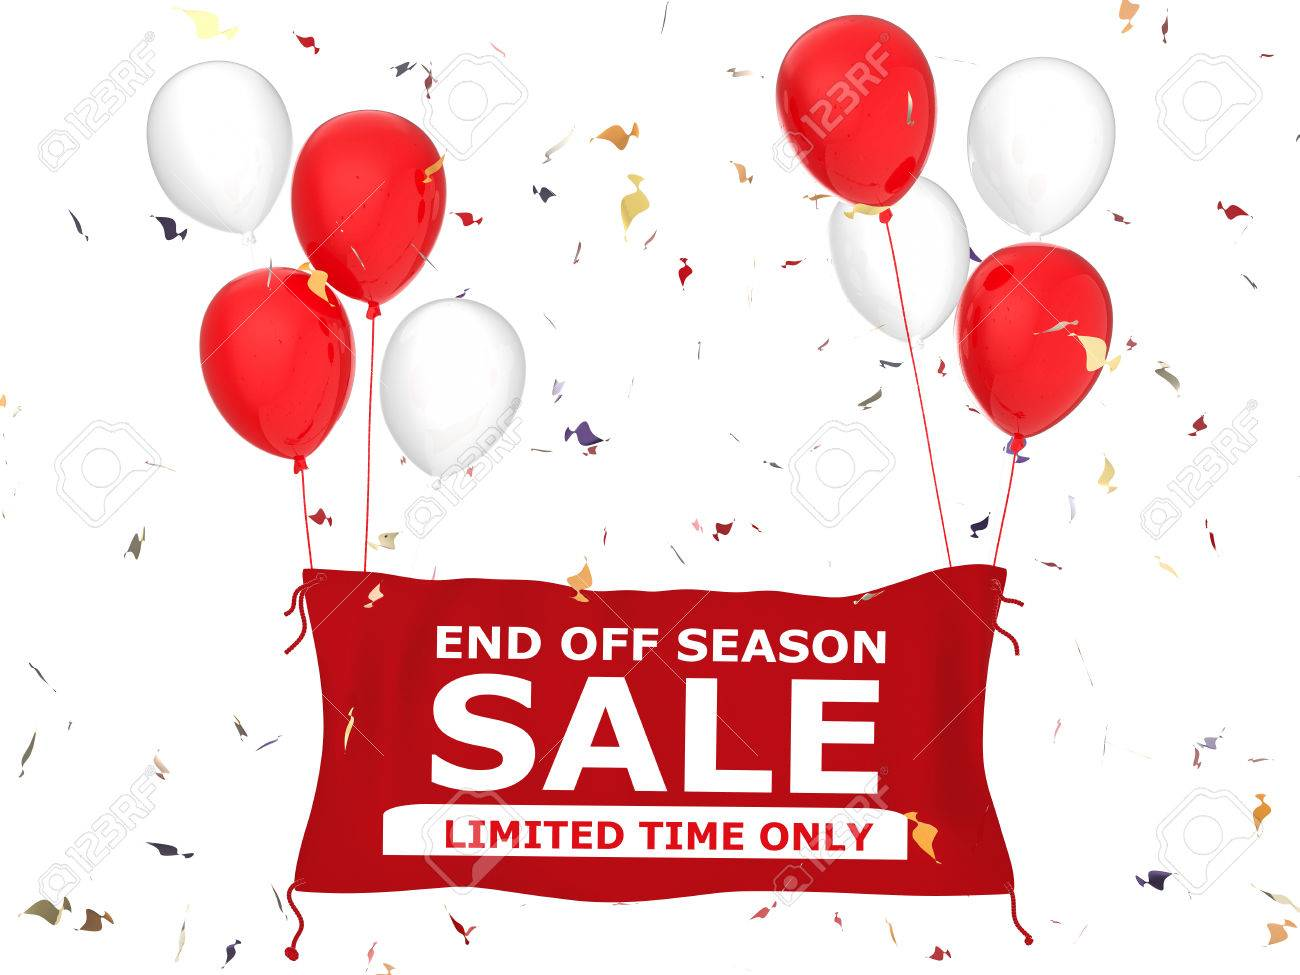 3f74d9d2188 end of season sale banner on white background Stock Photo - 50420927